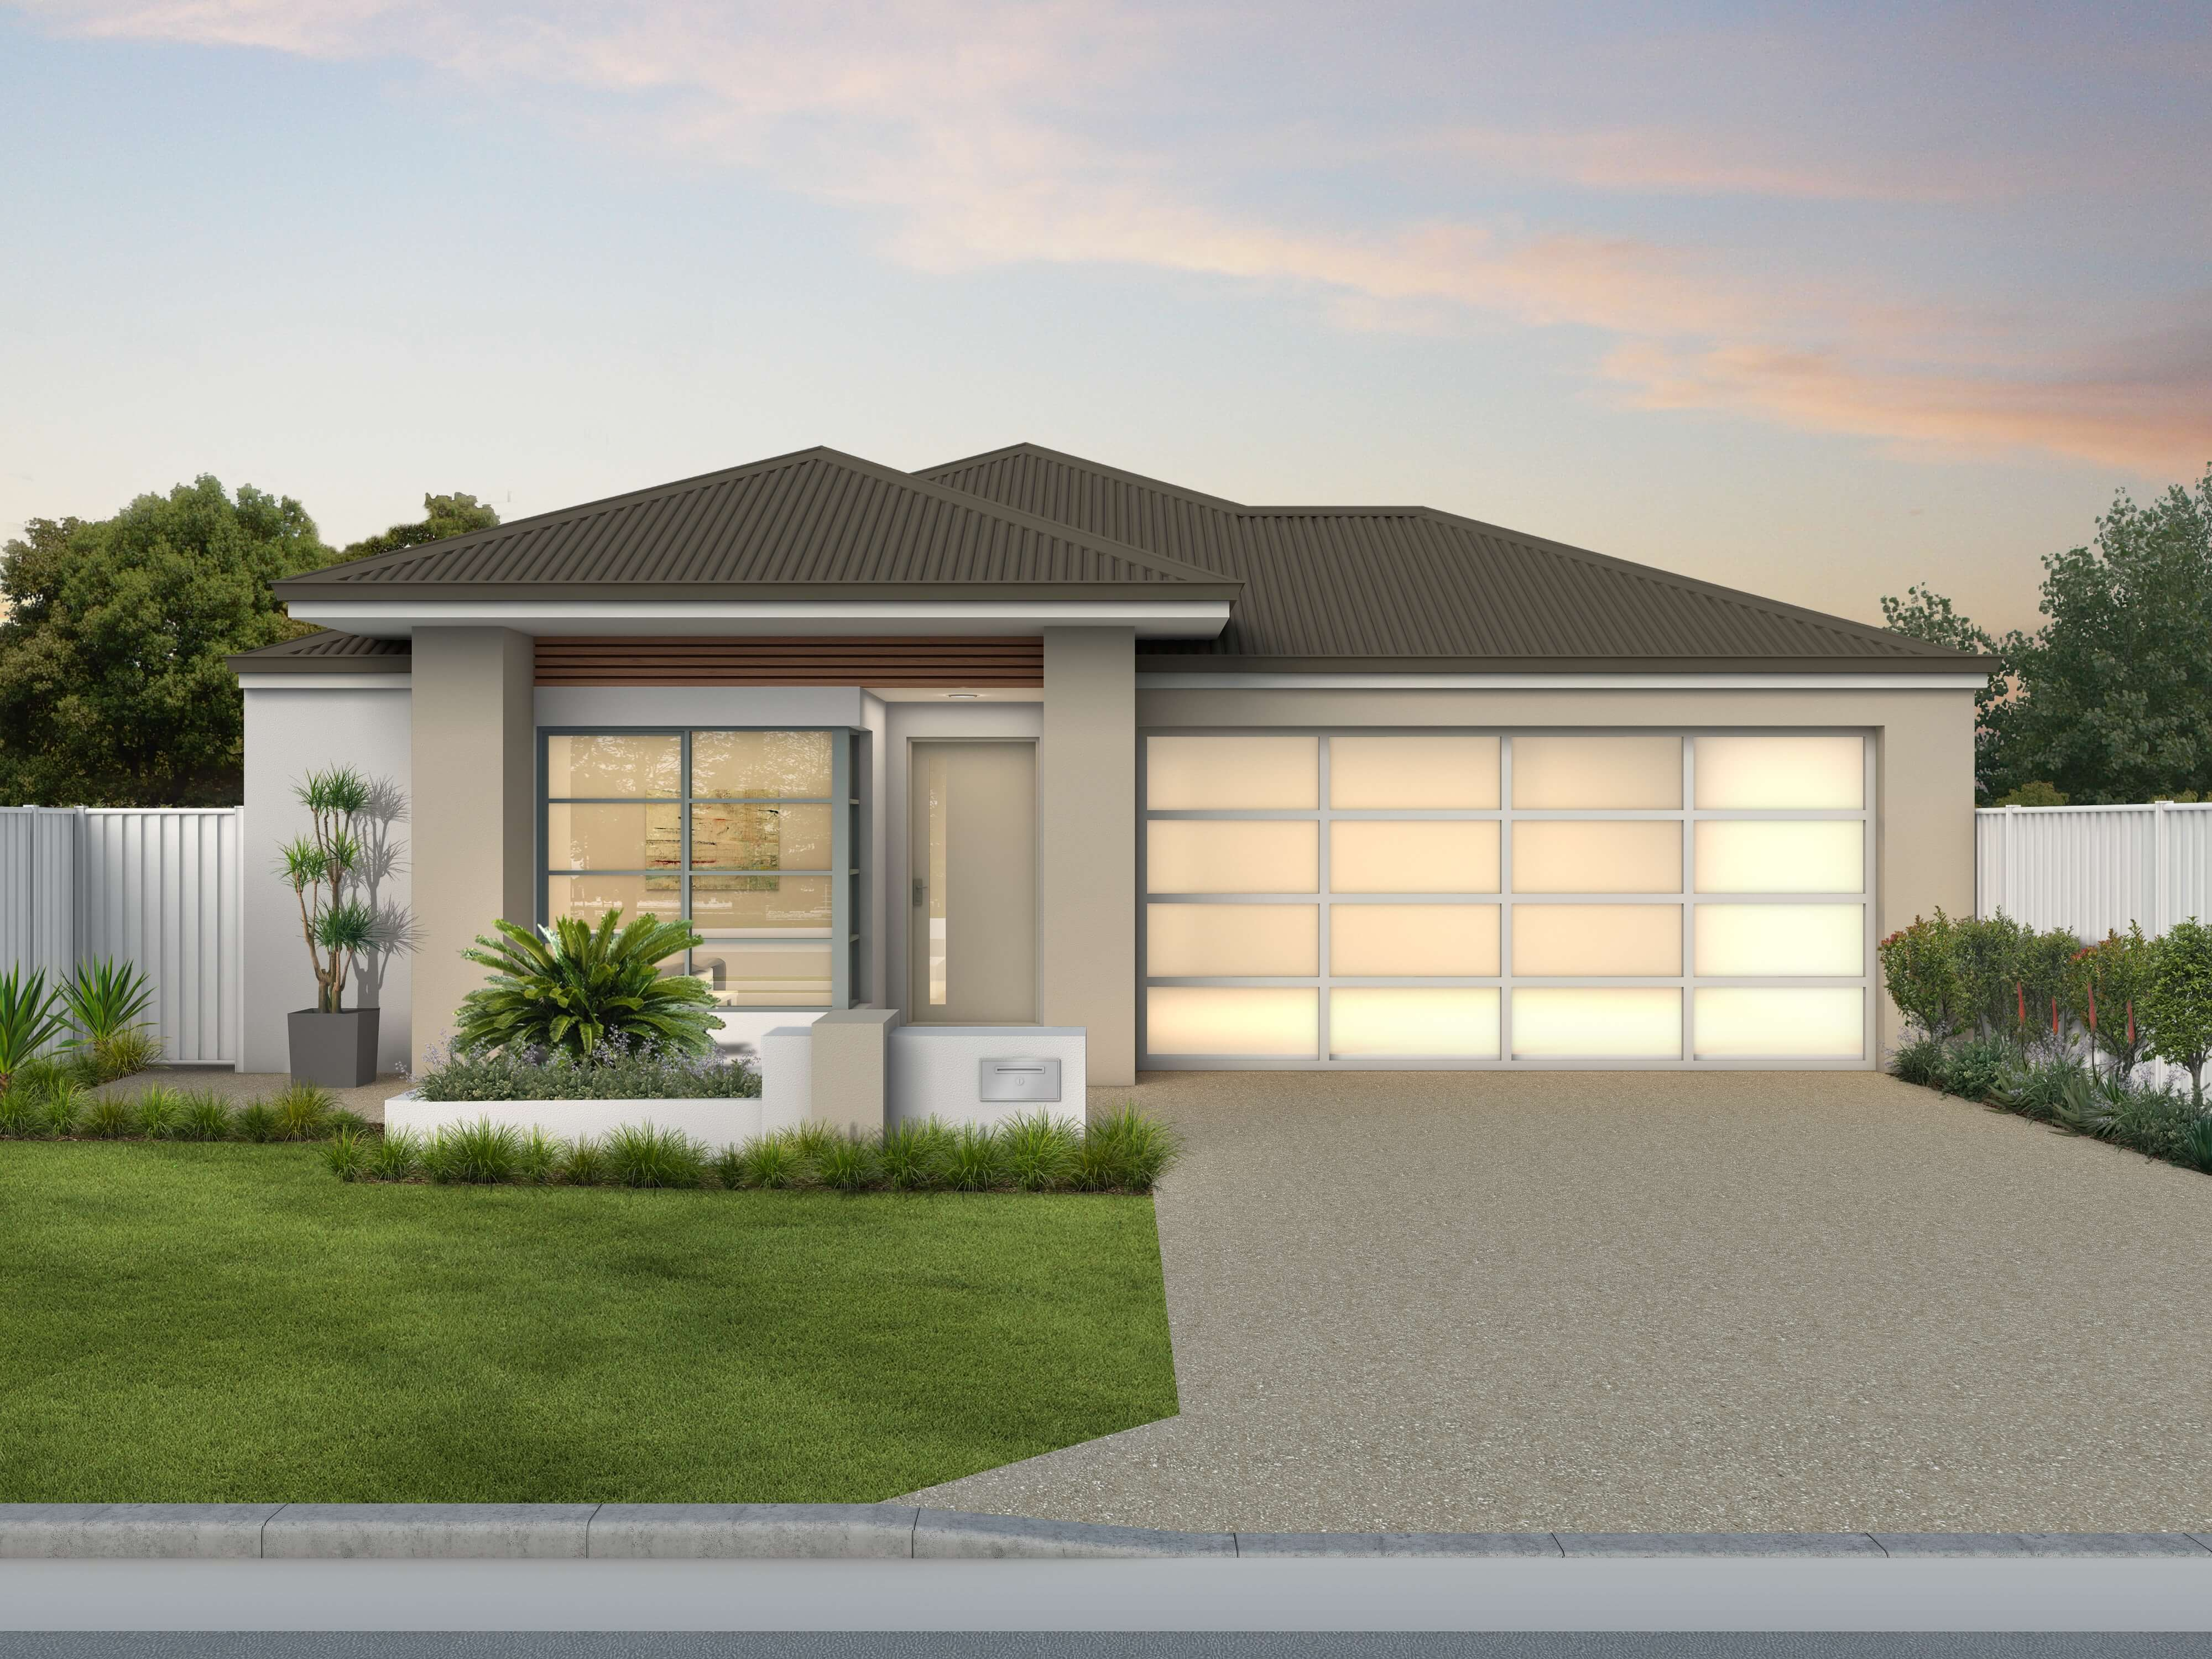 The Dryandra, a new home design by Move Homes for Perth families and first time home buyers